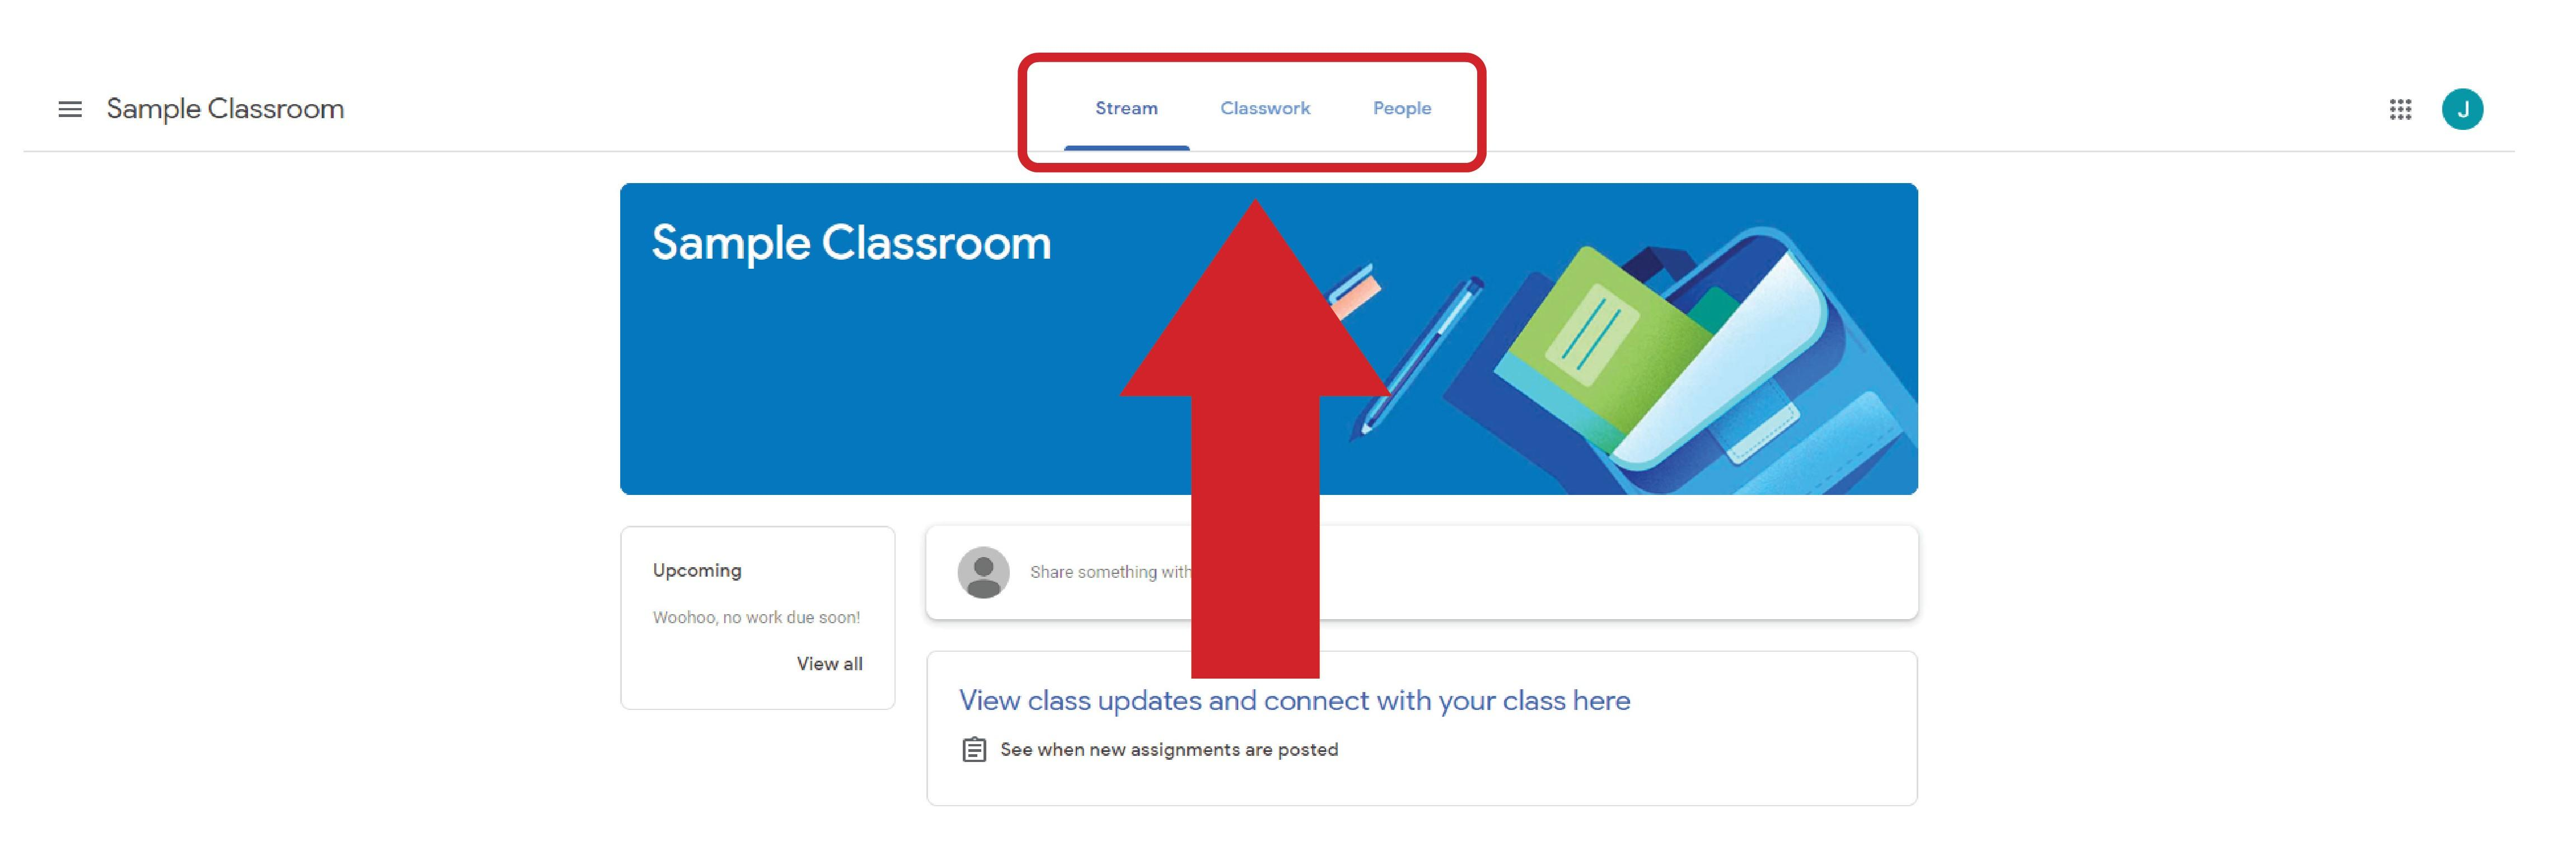 Google Classroom Sign-in Procedures - Screen #5